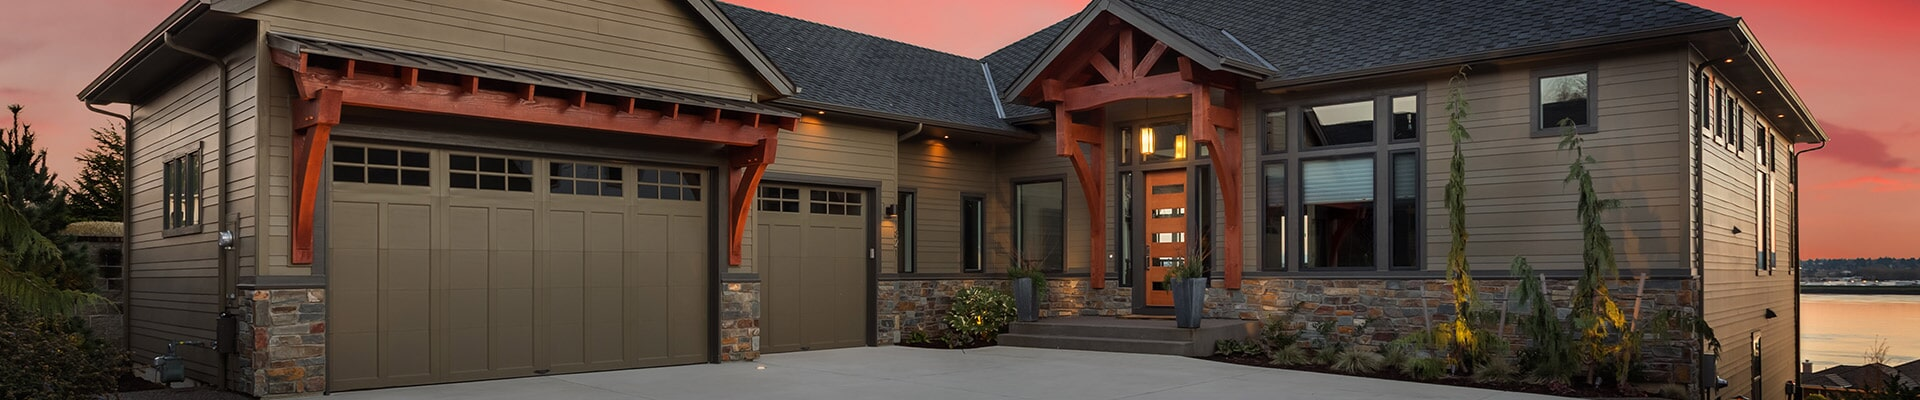 Residential And Commercial Garage Doors Danville Ky E Z Open